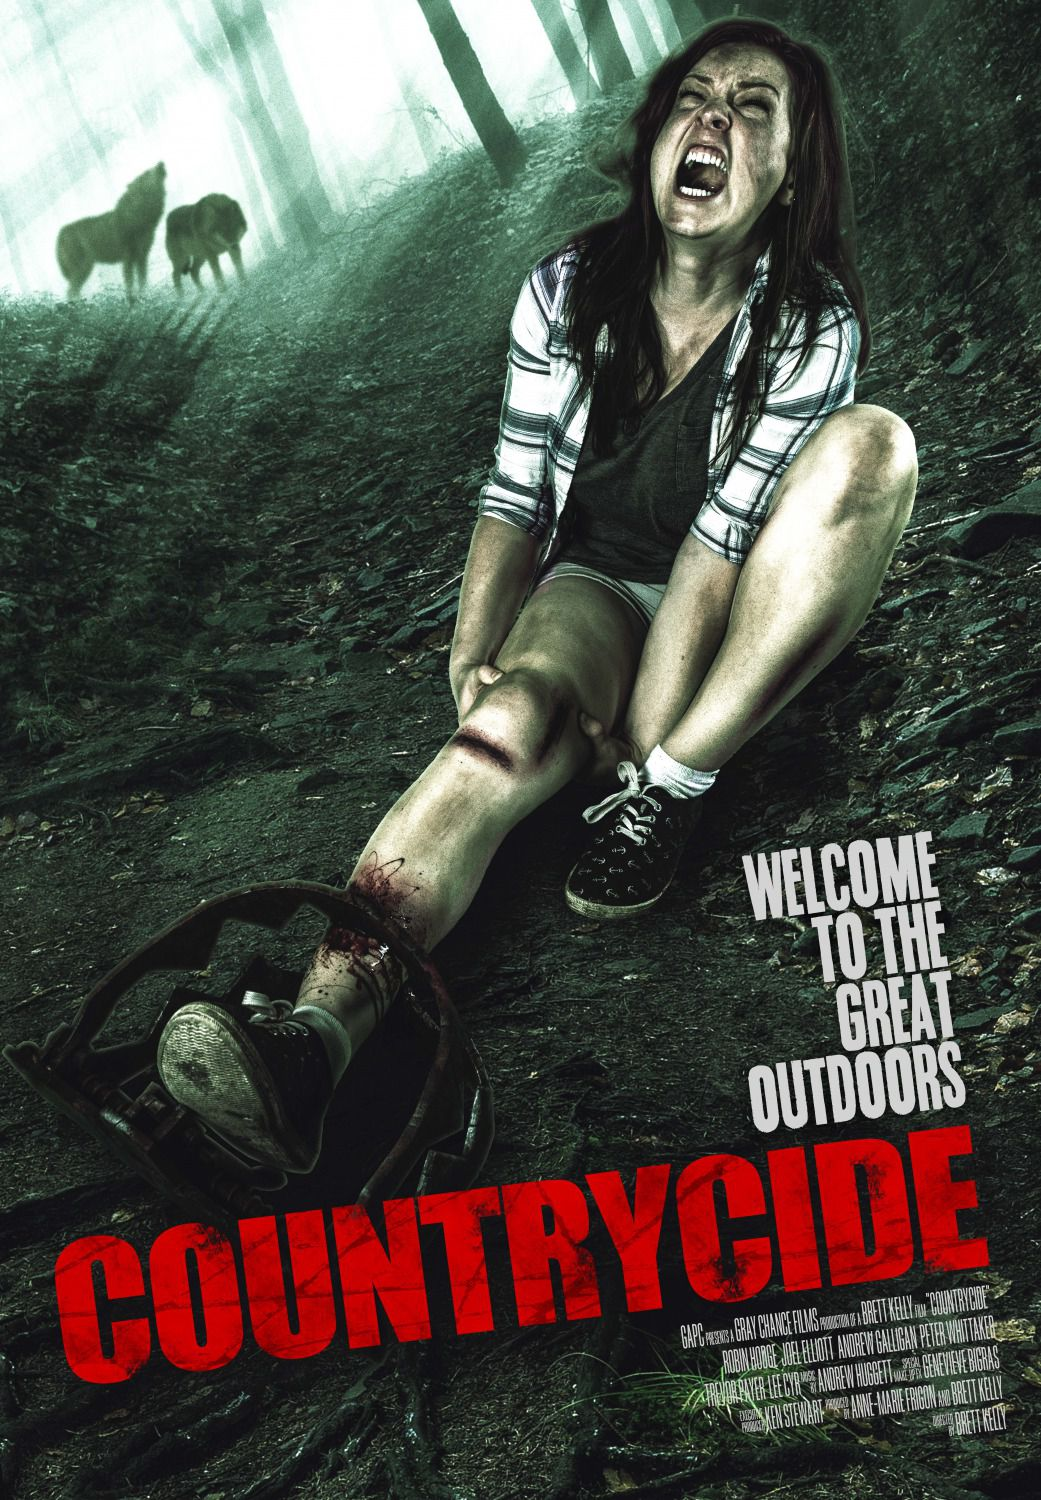 Countrycide - Welcome to the great outdoors - Cast: Robin Hodge, Joel Elliott, Andrew Galligan, Peter Whittaker - film poster